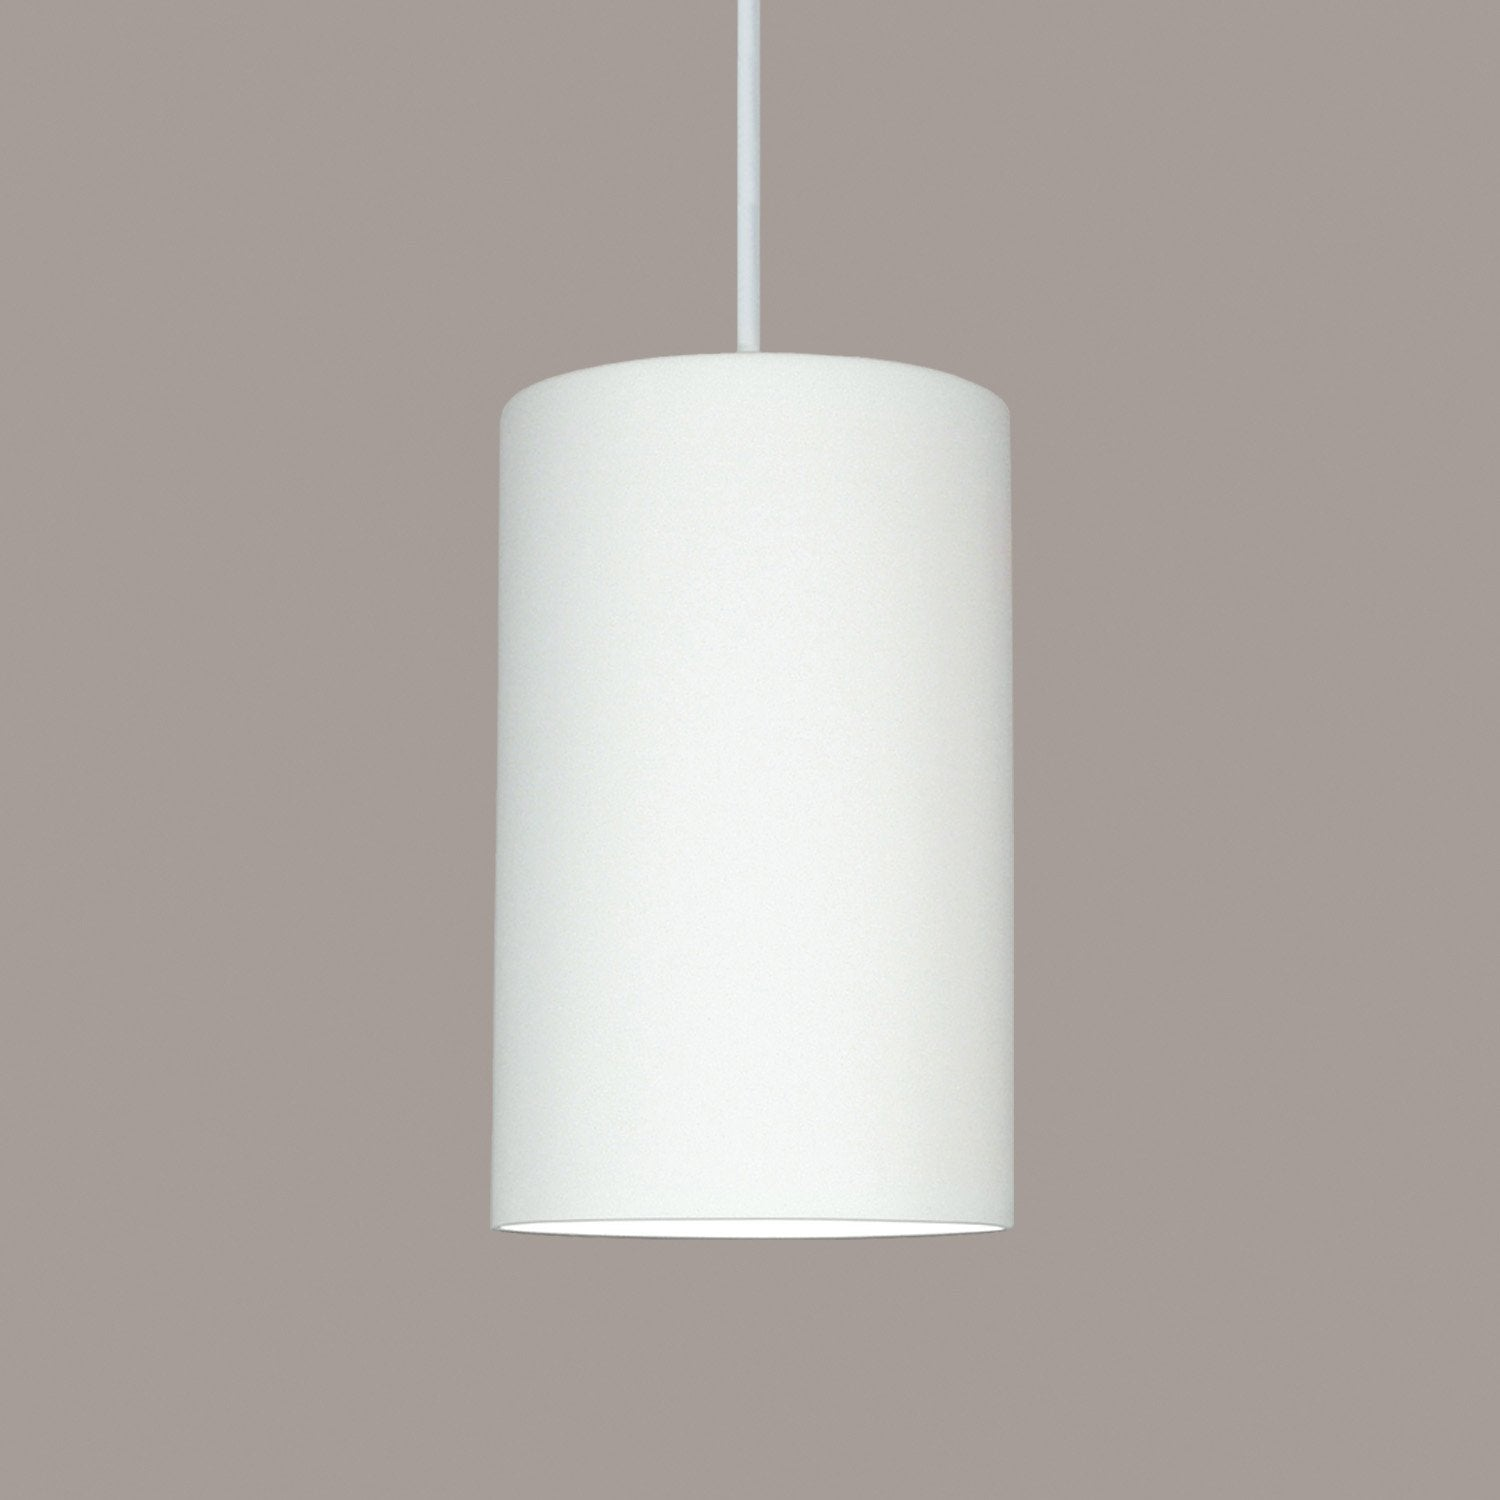 A19 P202-CFL13-A21-BCC Islands of Light Collection Andros Dusty Teal Finish Pendant